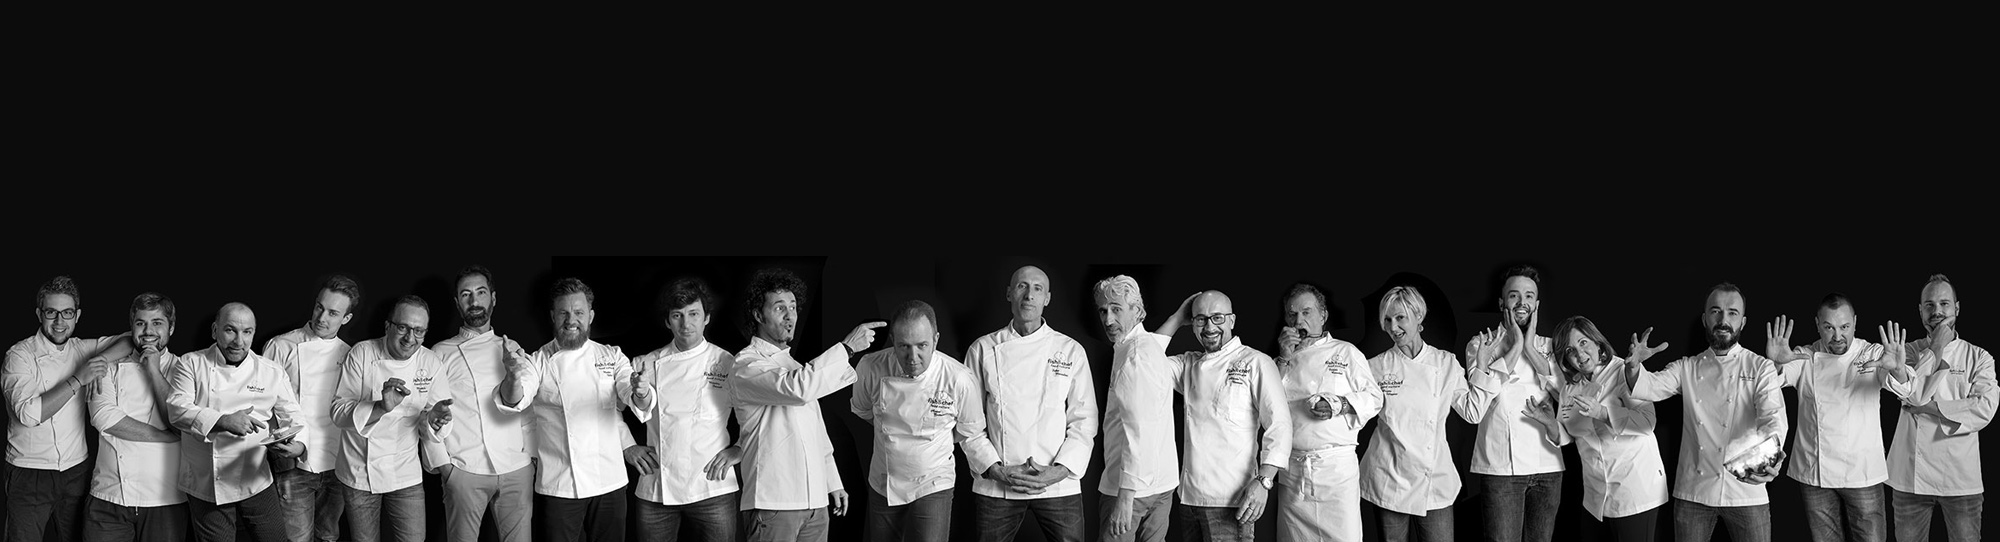 DREAM TEAM fish&chef decima edizione - 2019